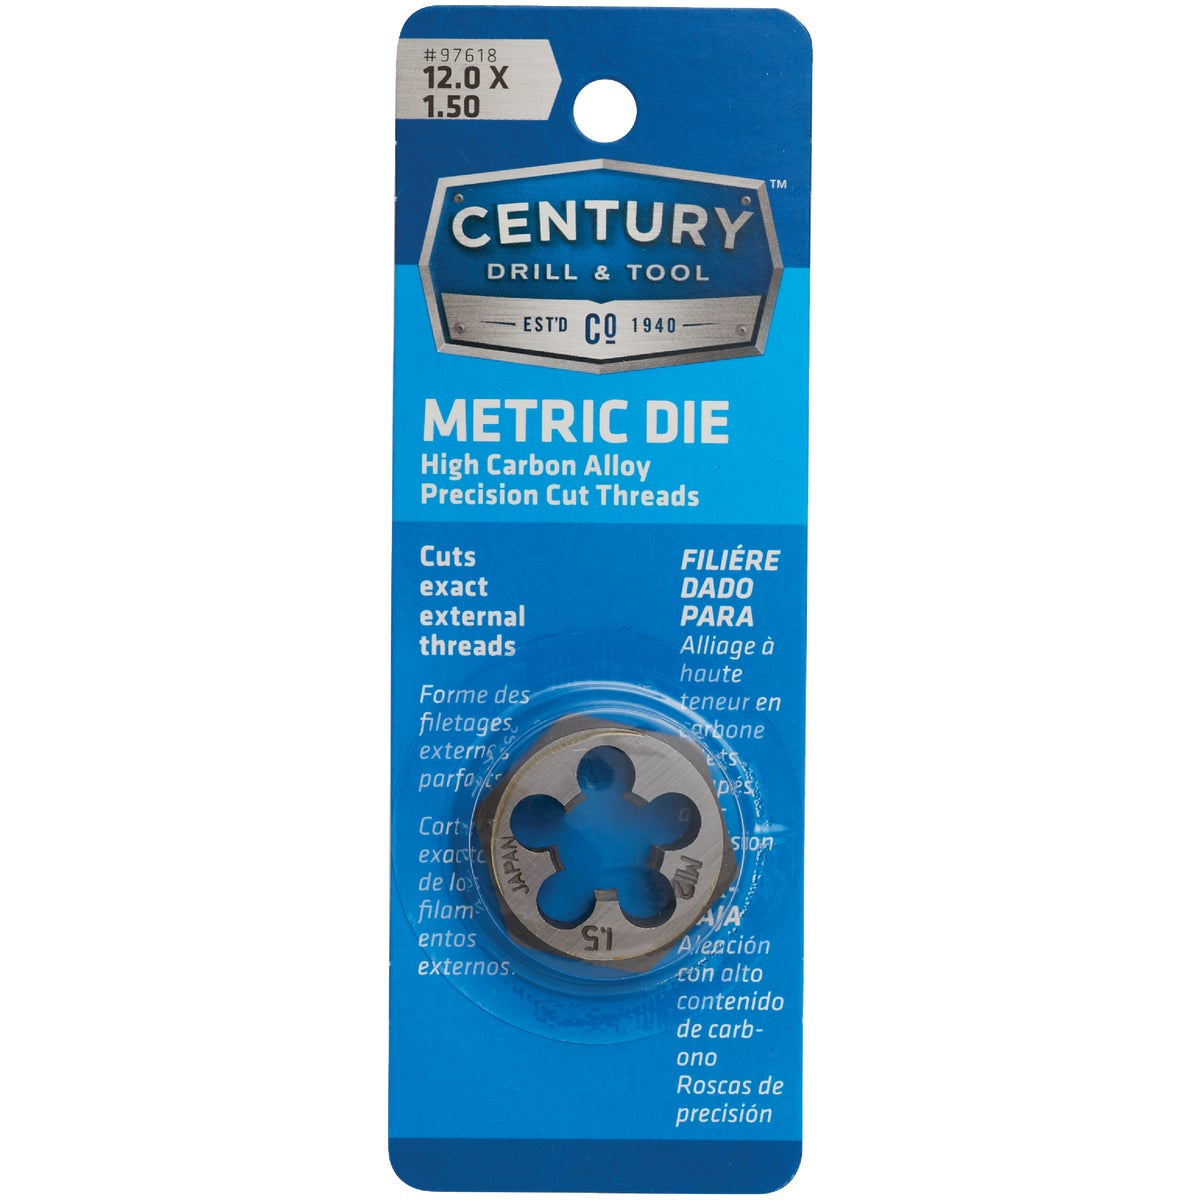 12MM-1.50 HEX DIE - 9743 by Irwin Industr Tool